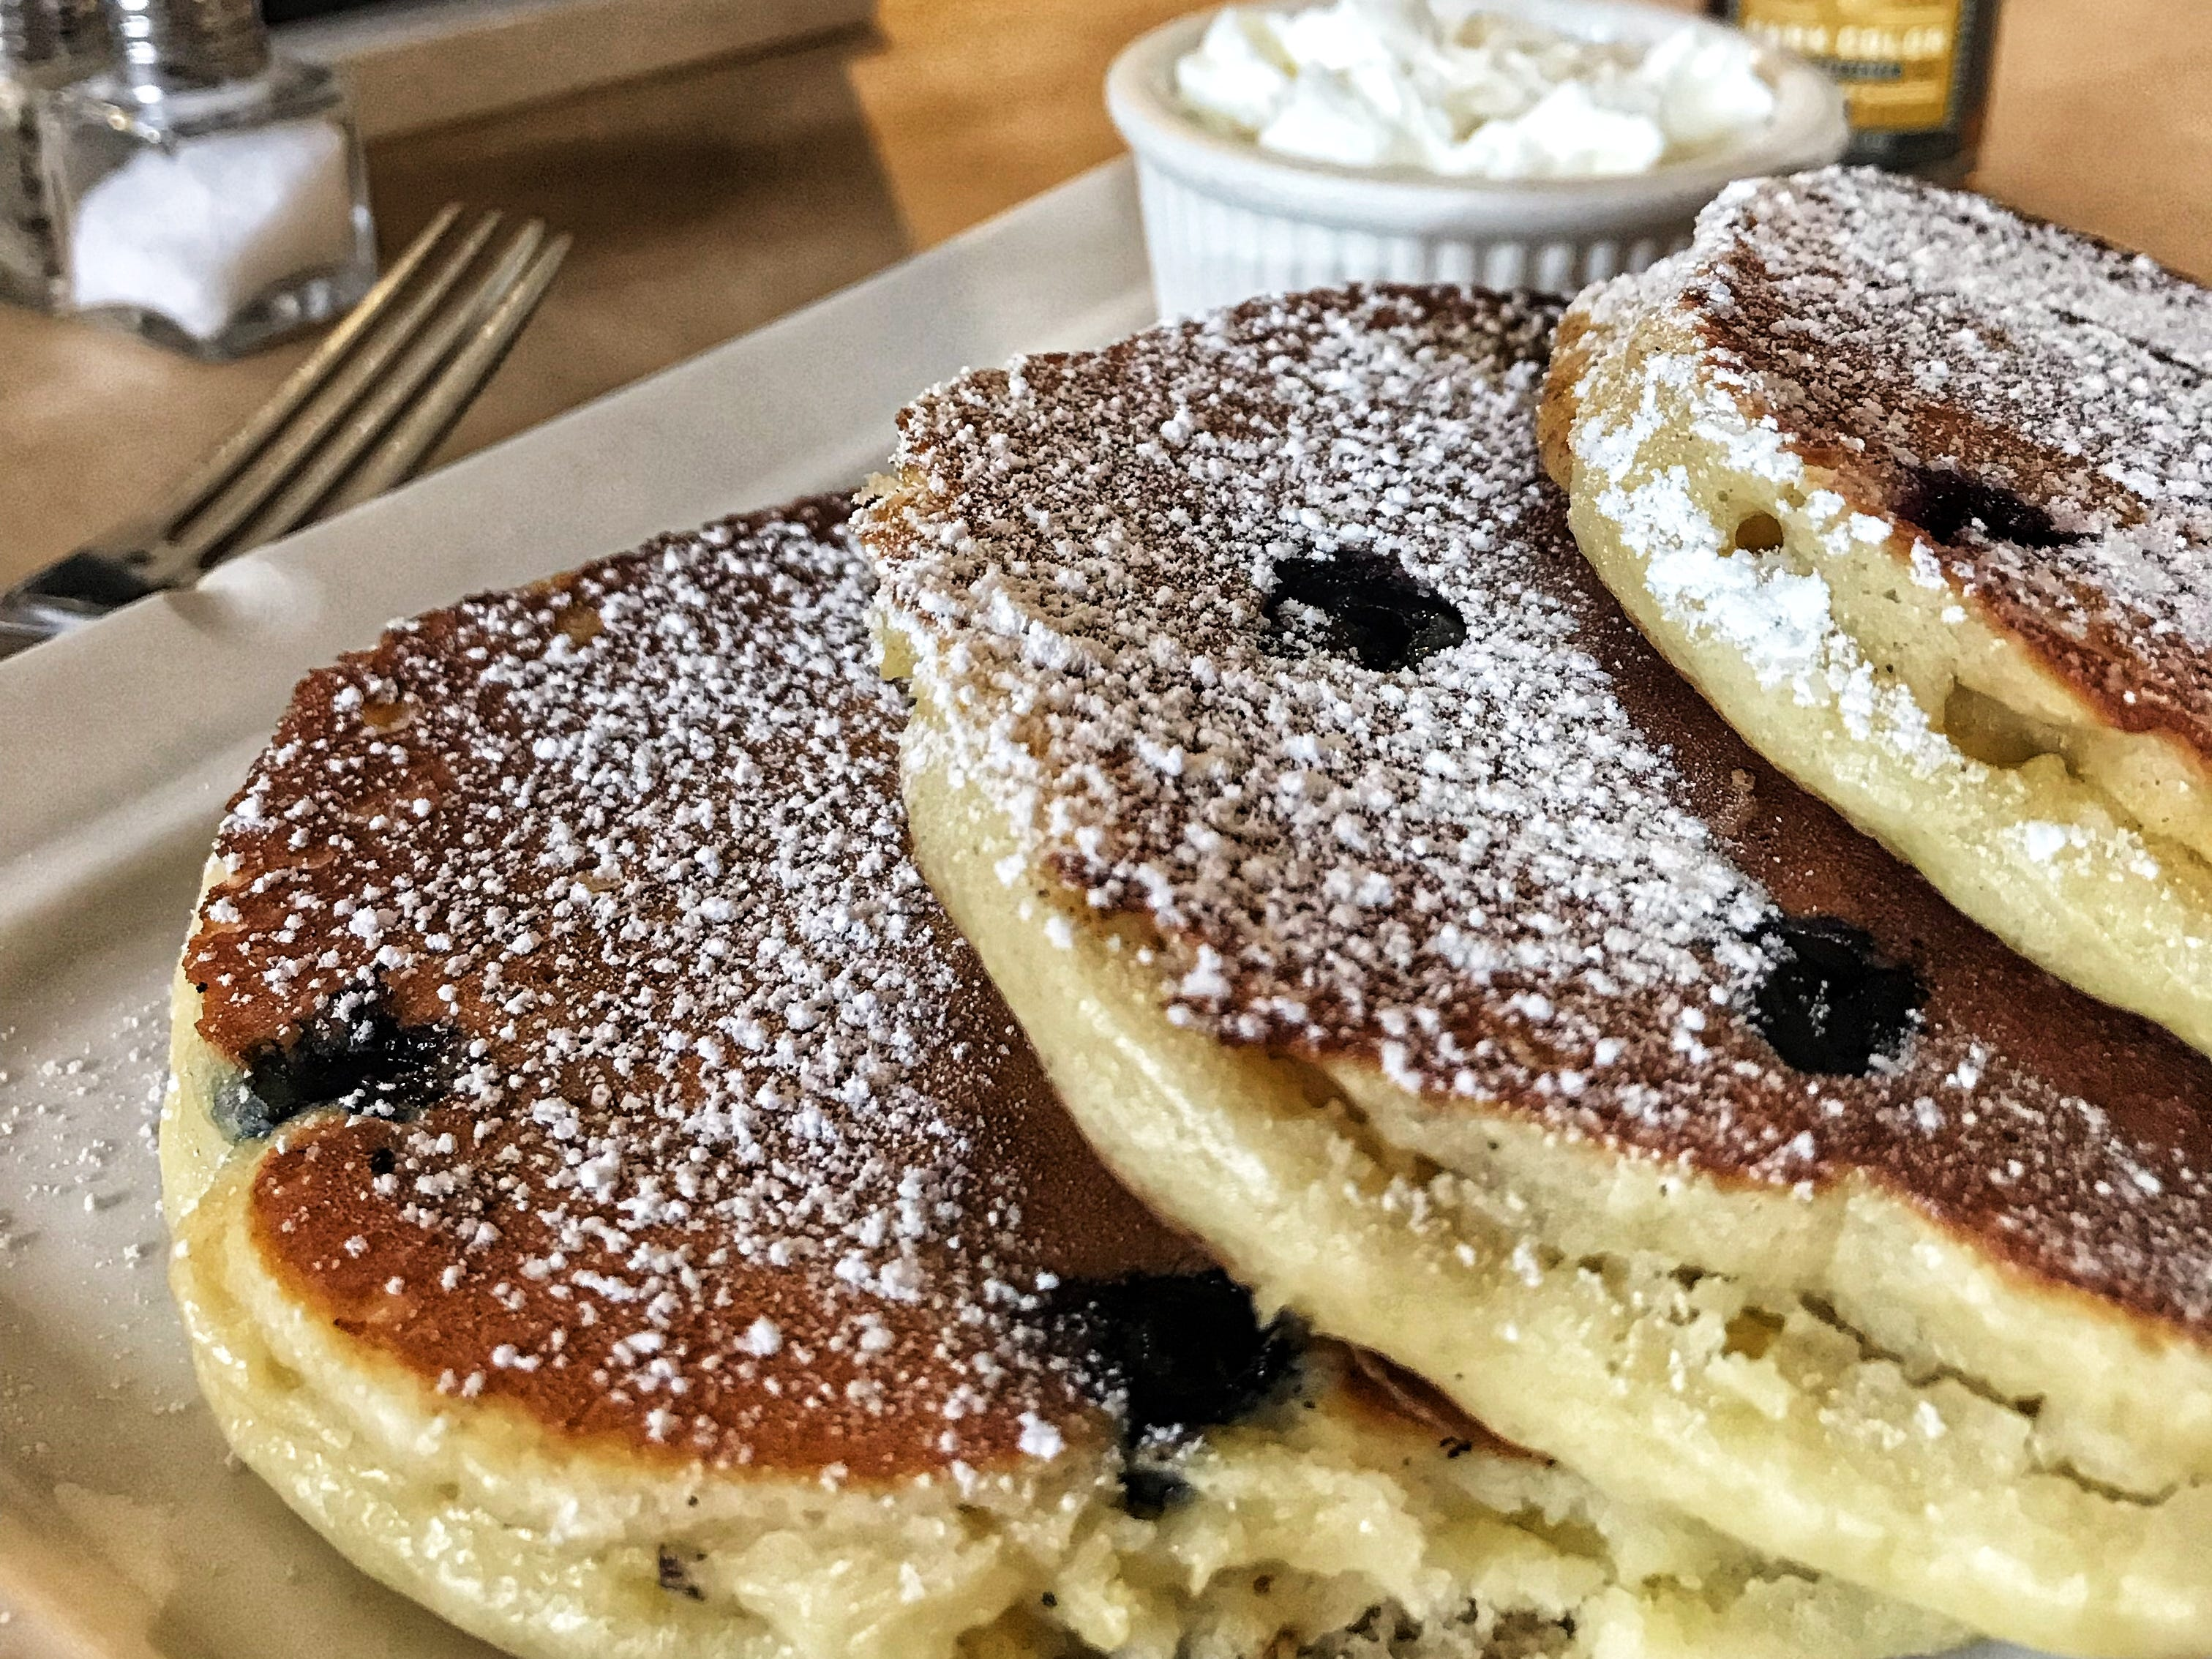 Blueberry Pancake at On the Way Cafe in Rye. Photographed Dec. 12, 2018.